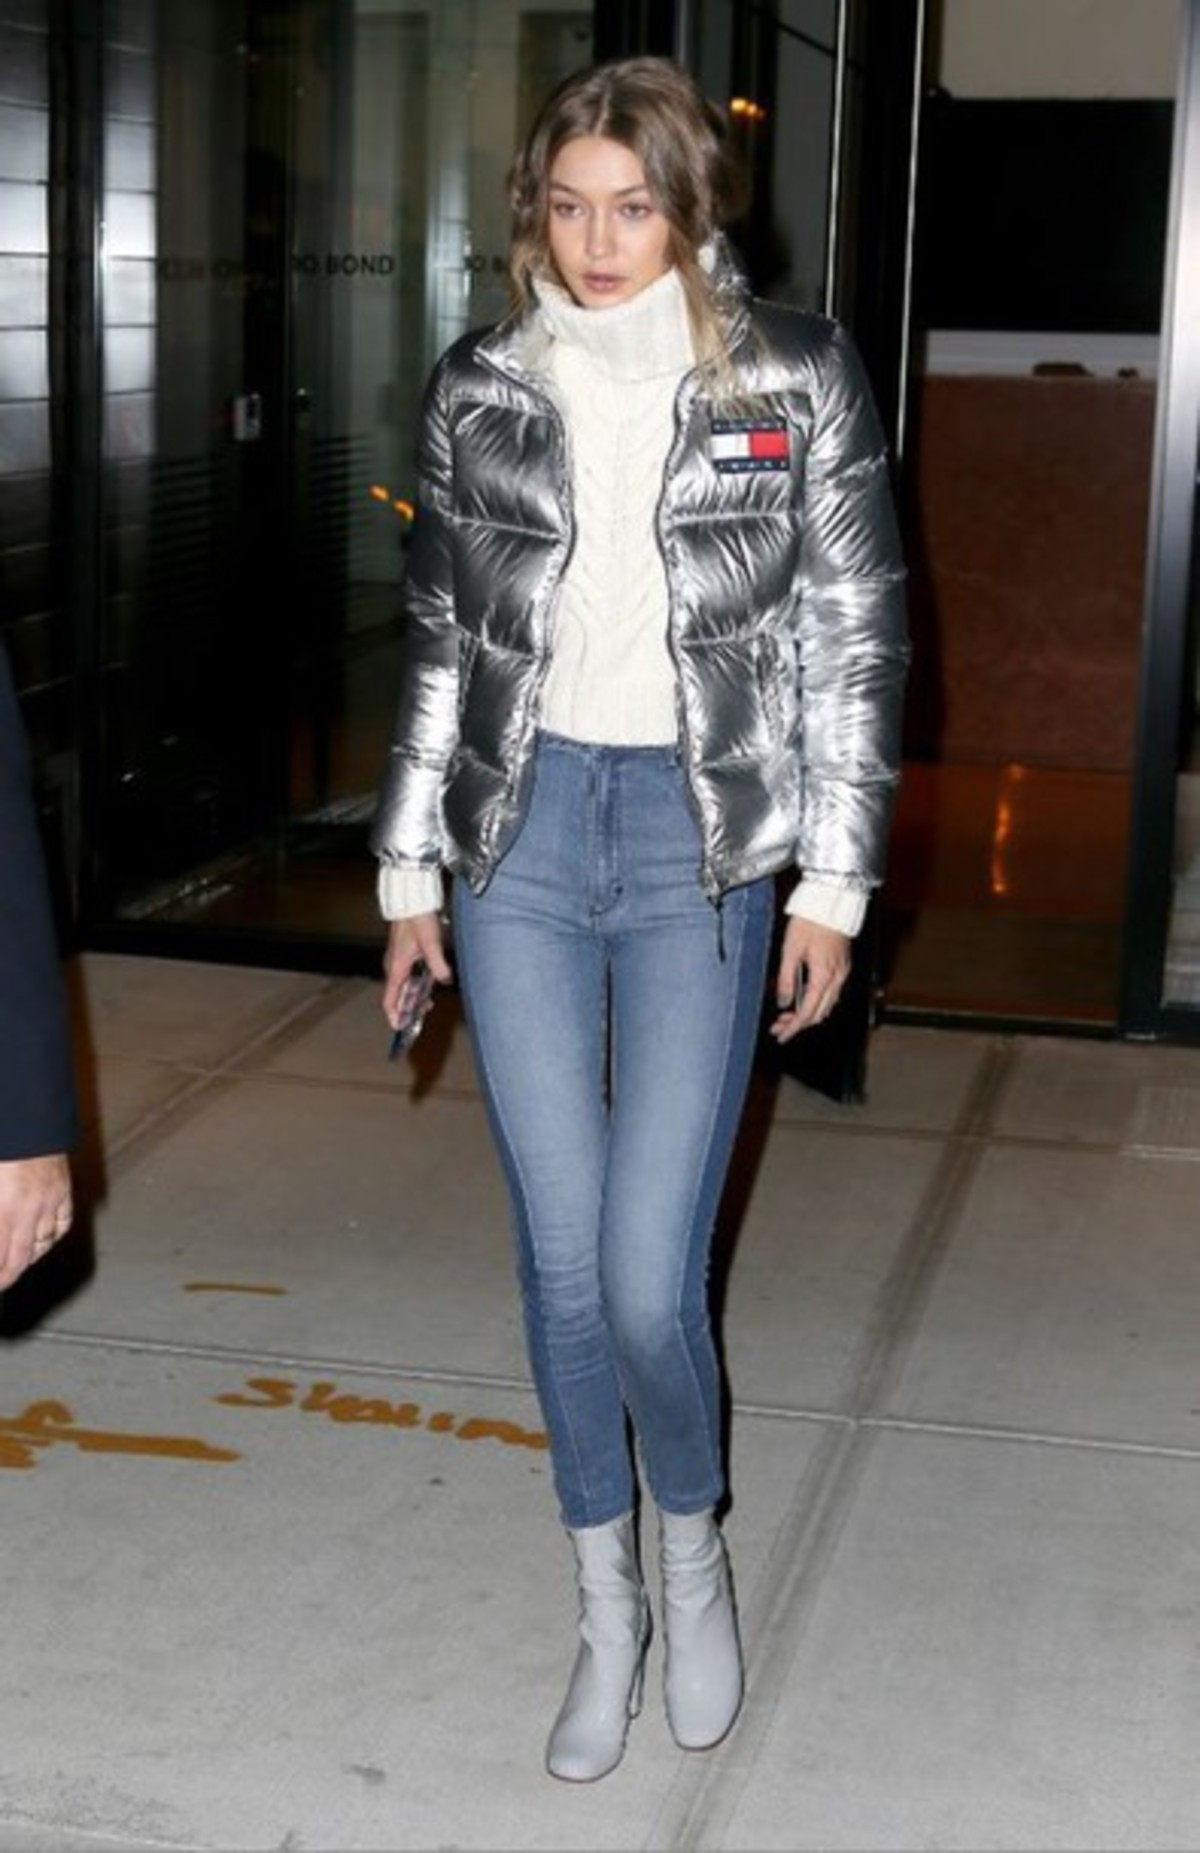 lrg4sq-l-610x610-jacket-metallic-silver-turtleneck-jeans-boots-gigi+hadid-fall+outfits-fall+jacket-turtleneck+sweater-sweater-shoes